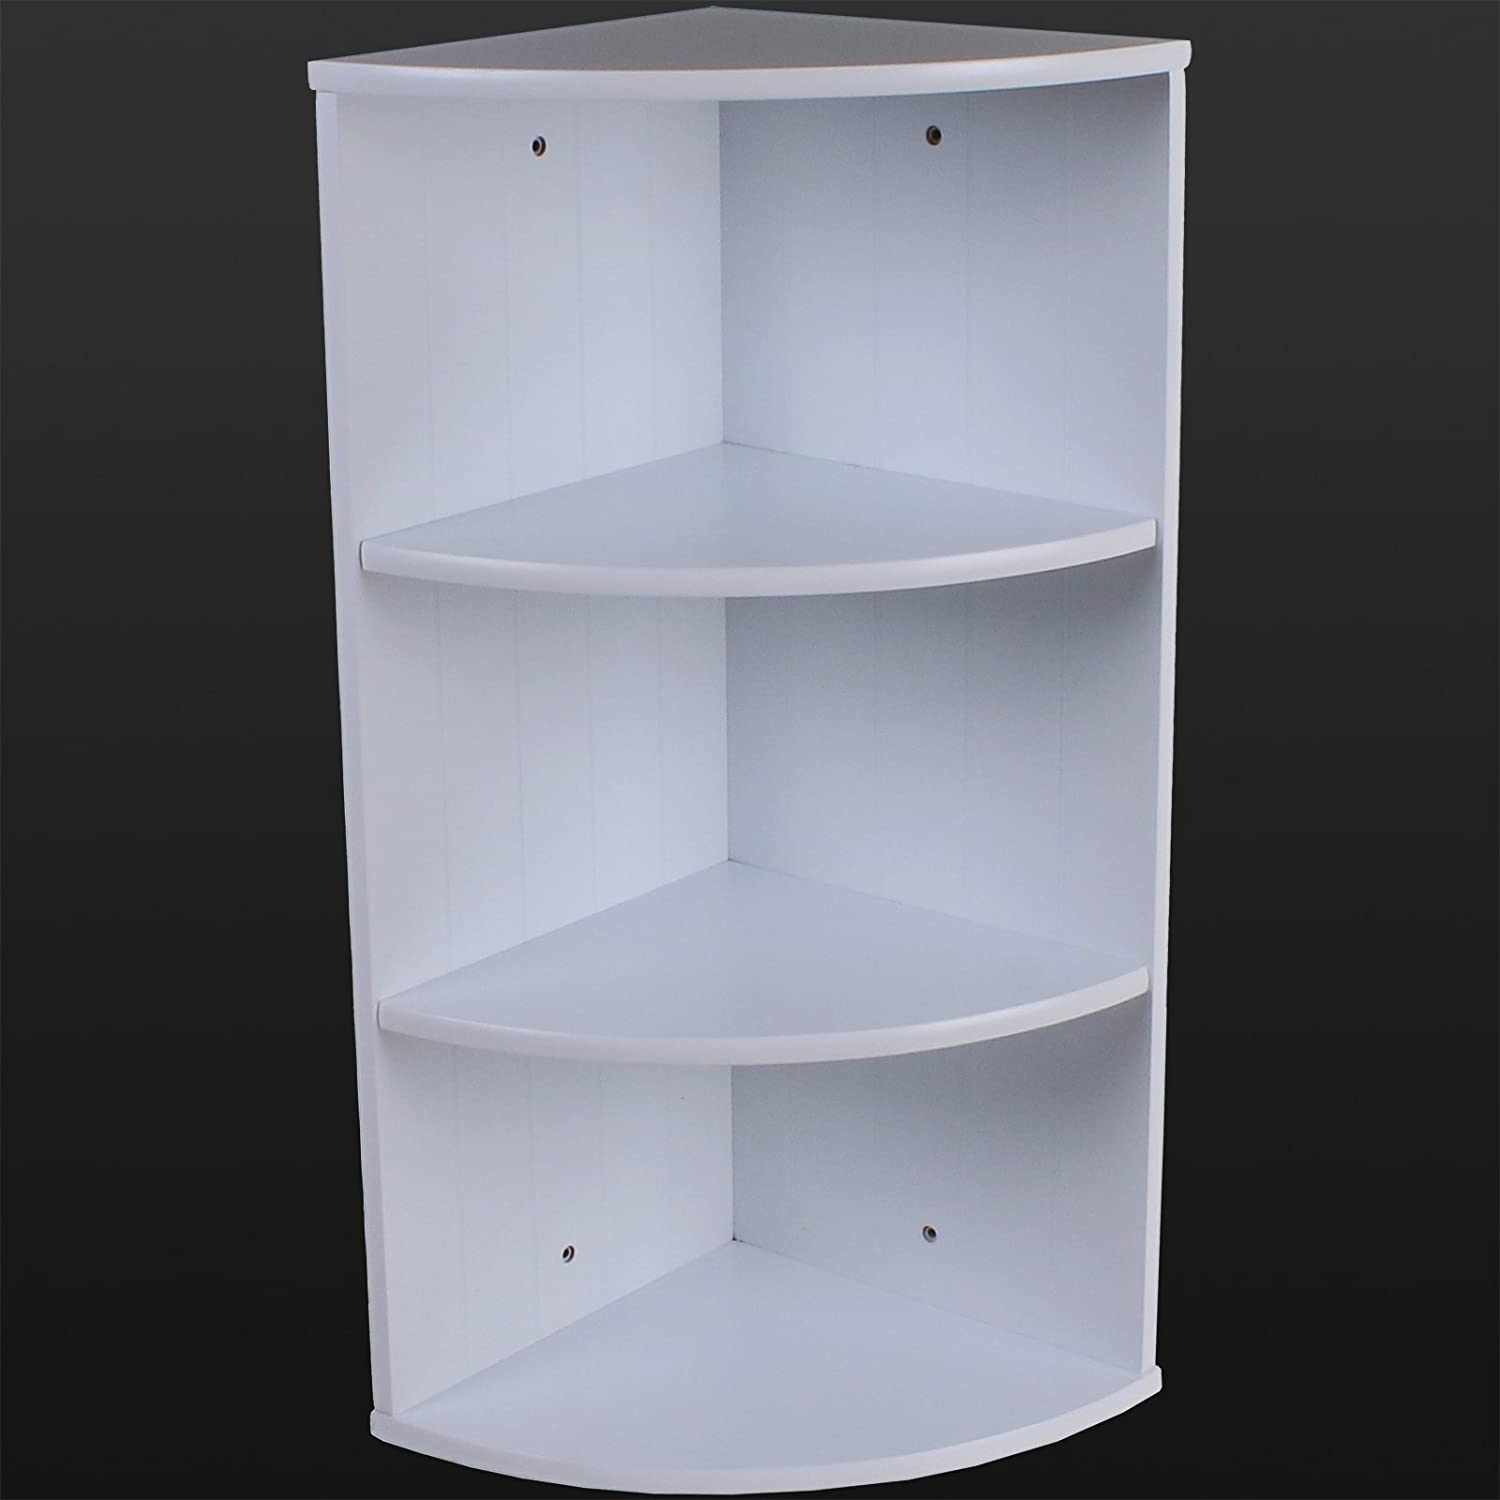 marko bathroom 3 tier corner shelving unit white wooden shelves storage wall mountable kitchen amazoncouk kitchen home - Kitchen Corner Shelf